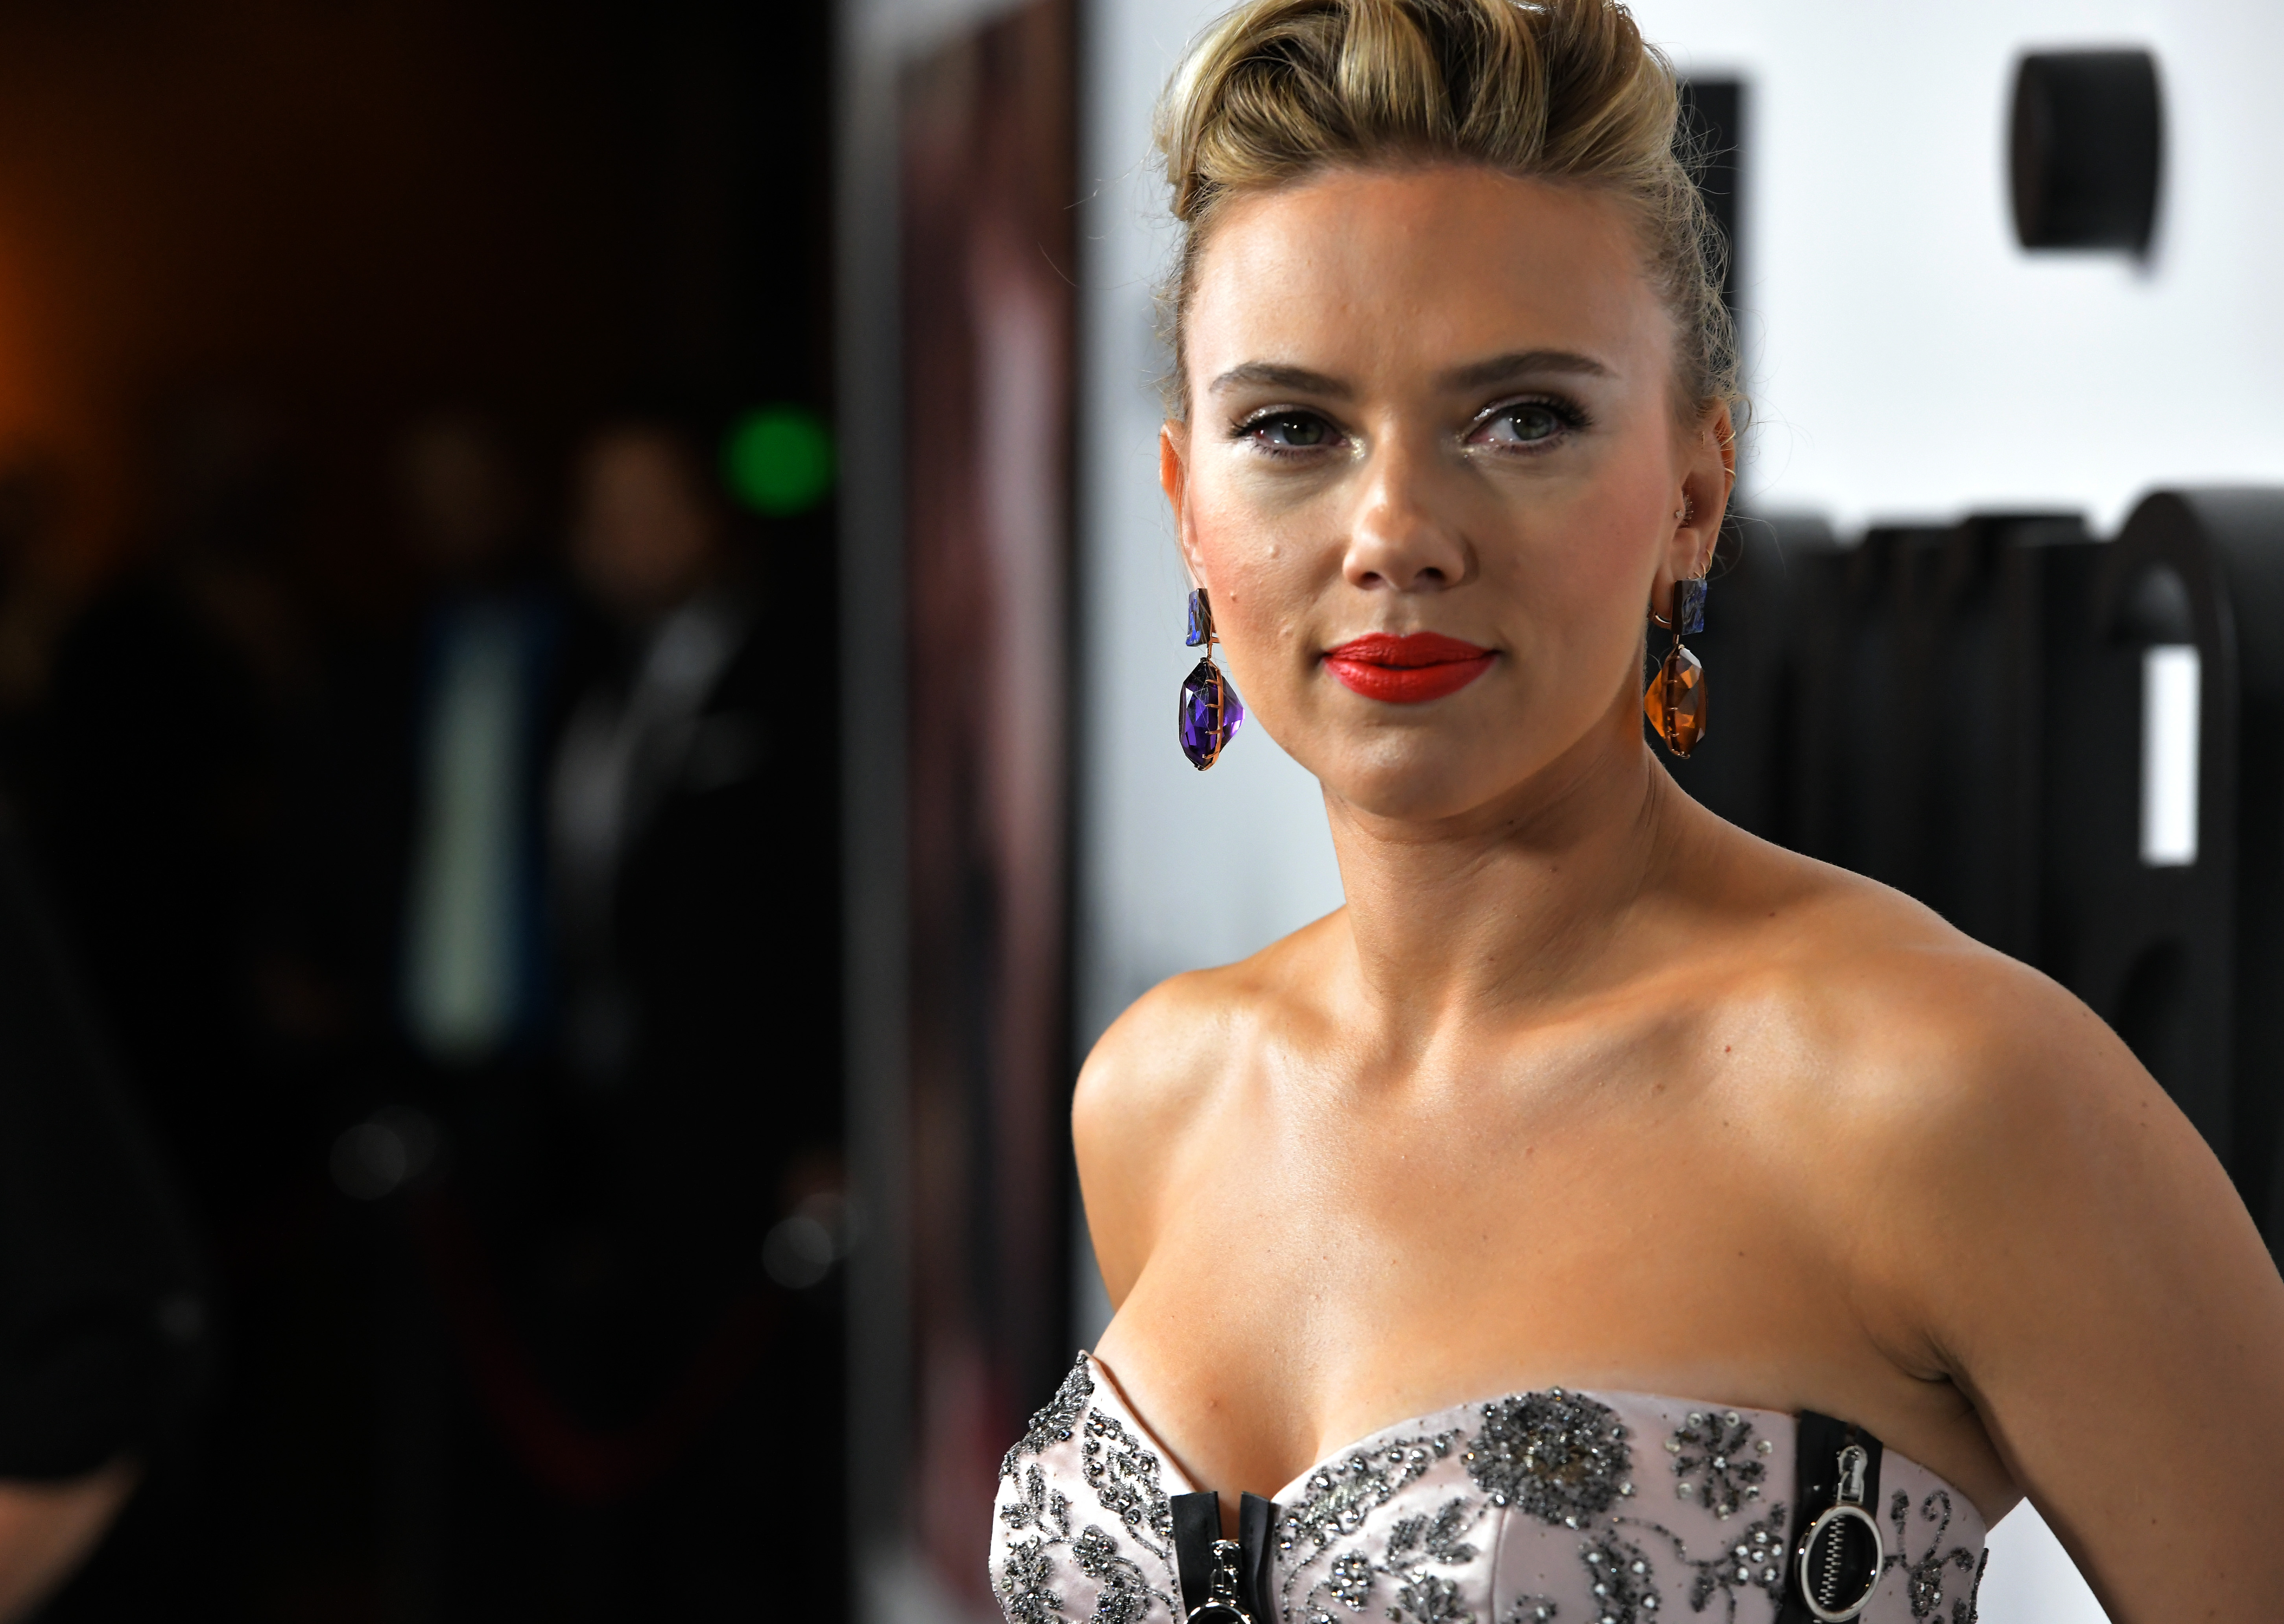 Scarlett Johansson attends the 'Marriage Story' Los Angeles Premiere at the Directors Guild on November 05, 2019 in Los Angeles, California. (Photo by Charley Gallay/Getty Images for Netflix)